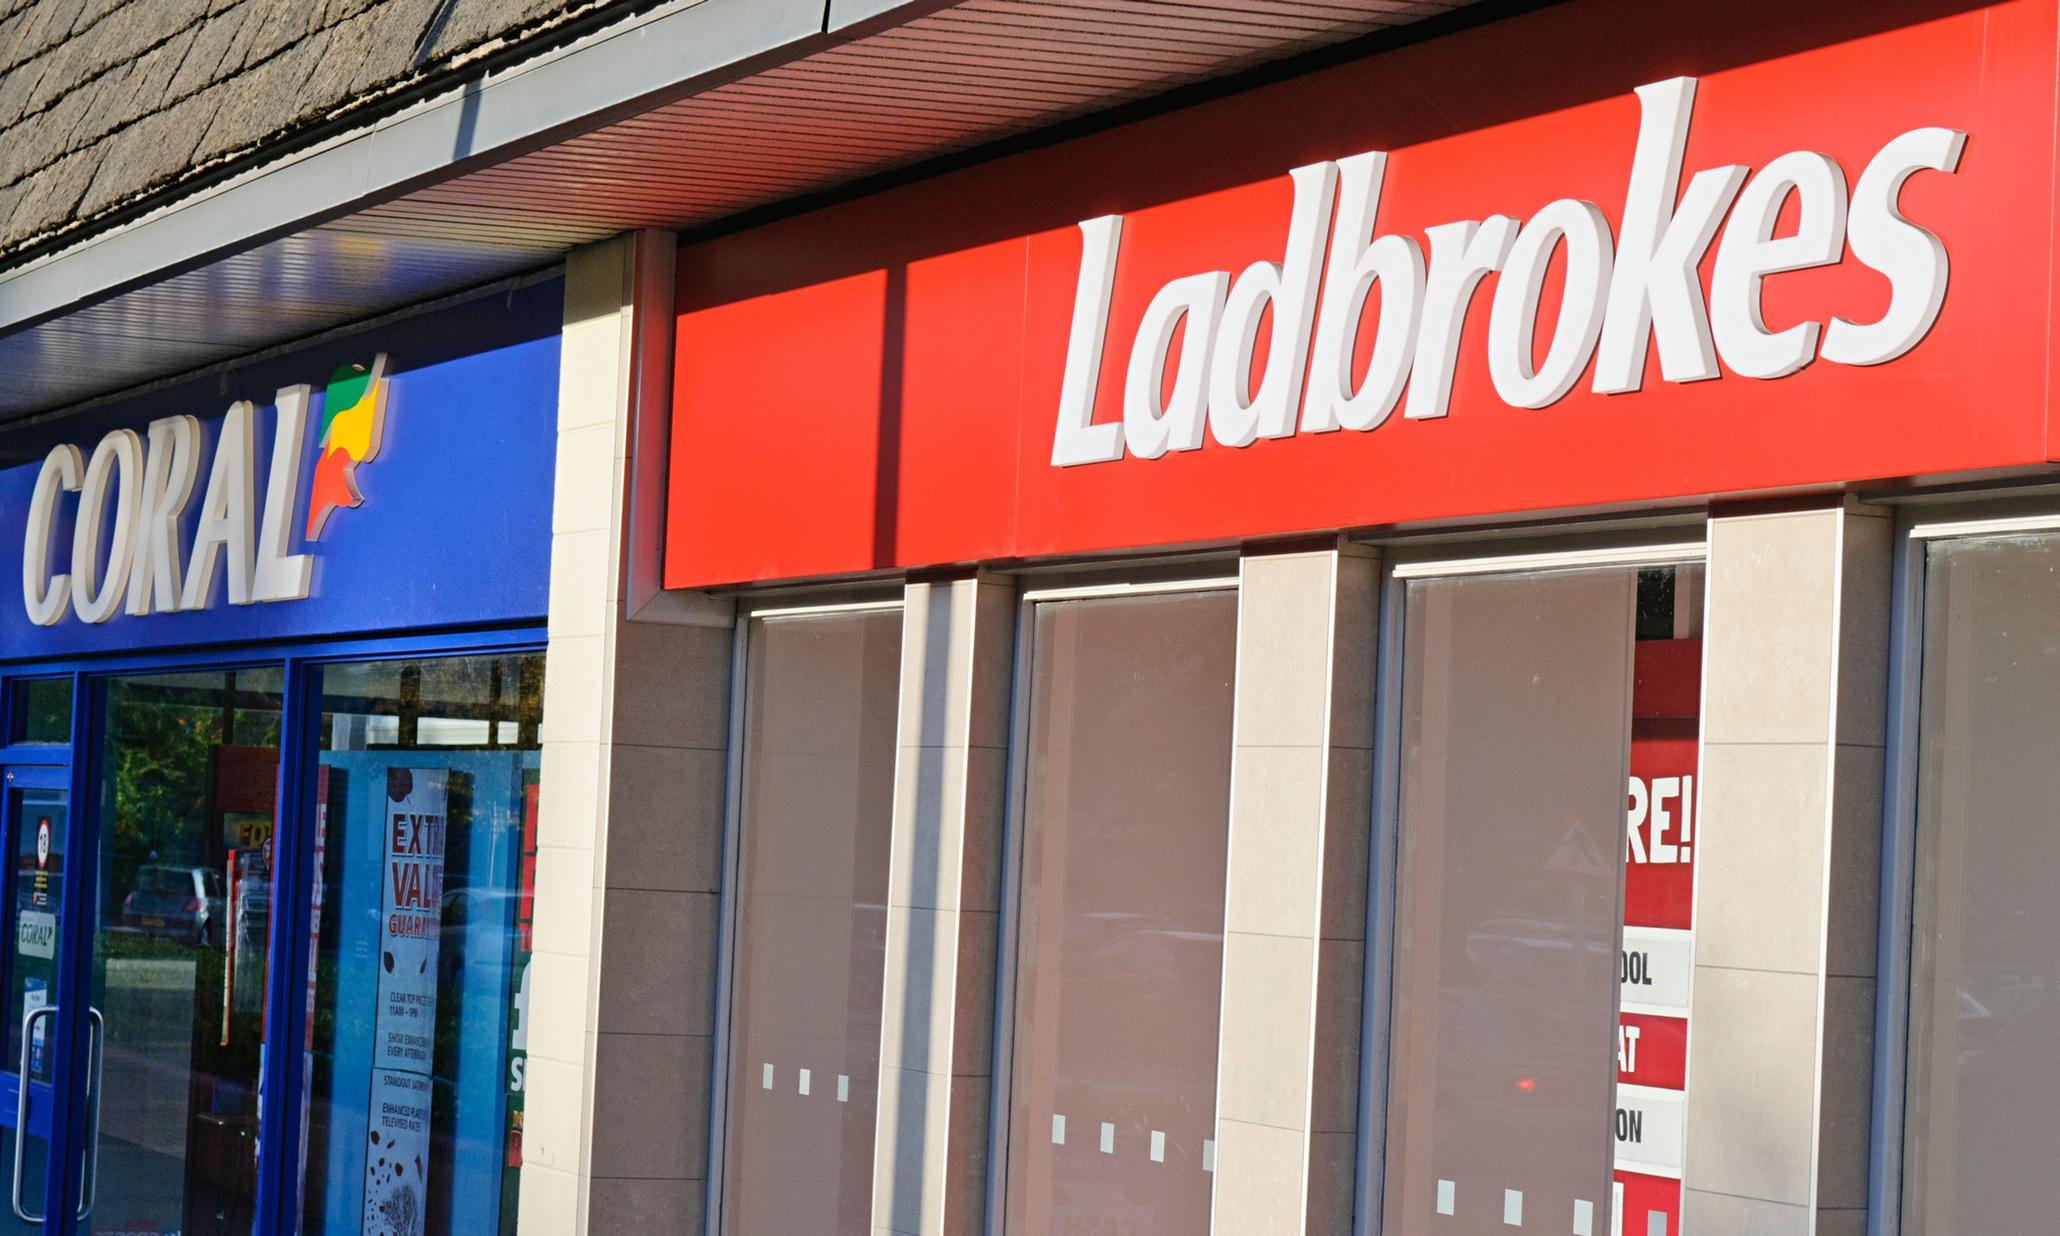 Gala coral ladbrokes betting henry hill sports betting